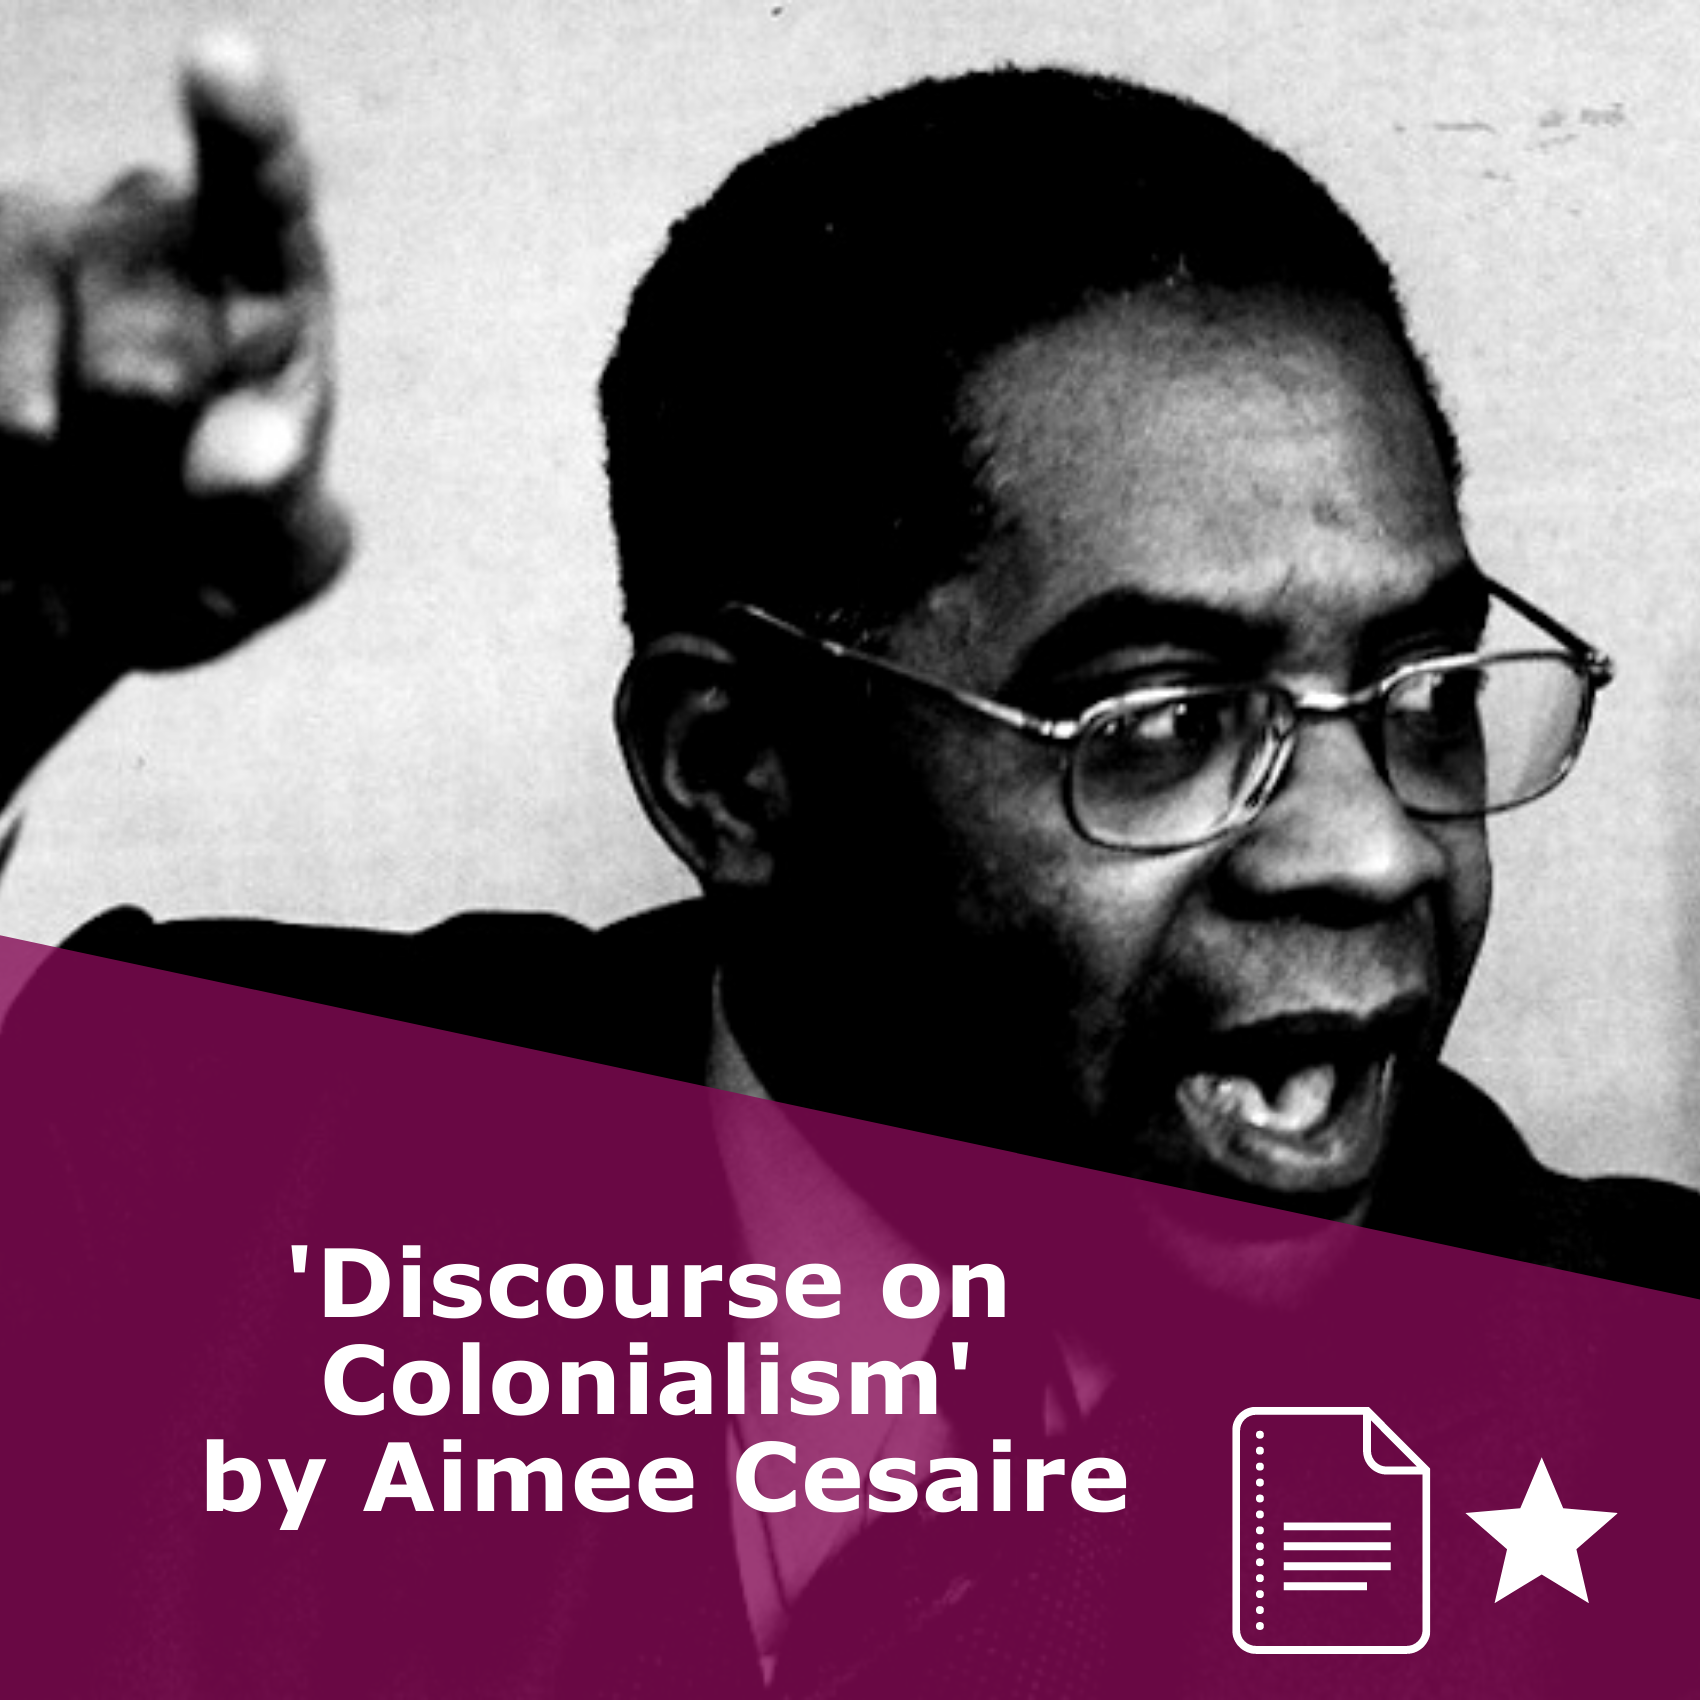 Picture of Aimee Cesaire in black and white. Title 'Discourse on Colonialism'. It is an article, rated one star.